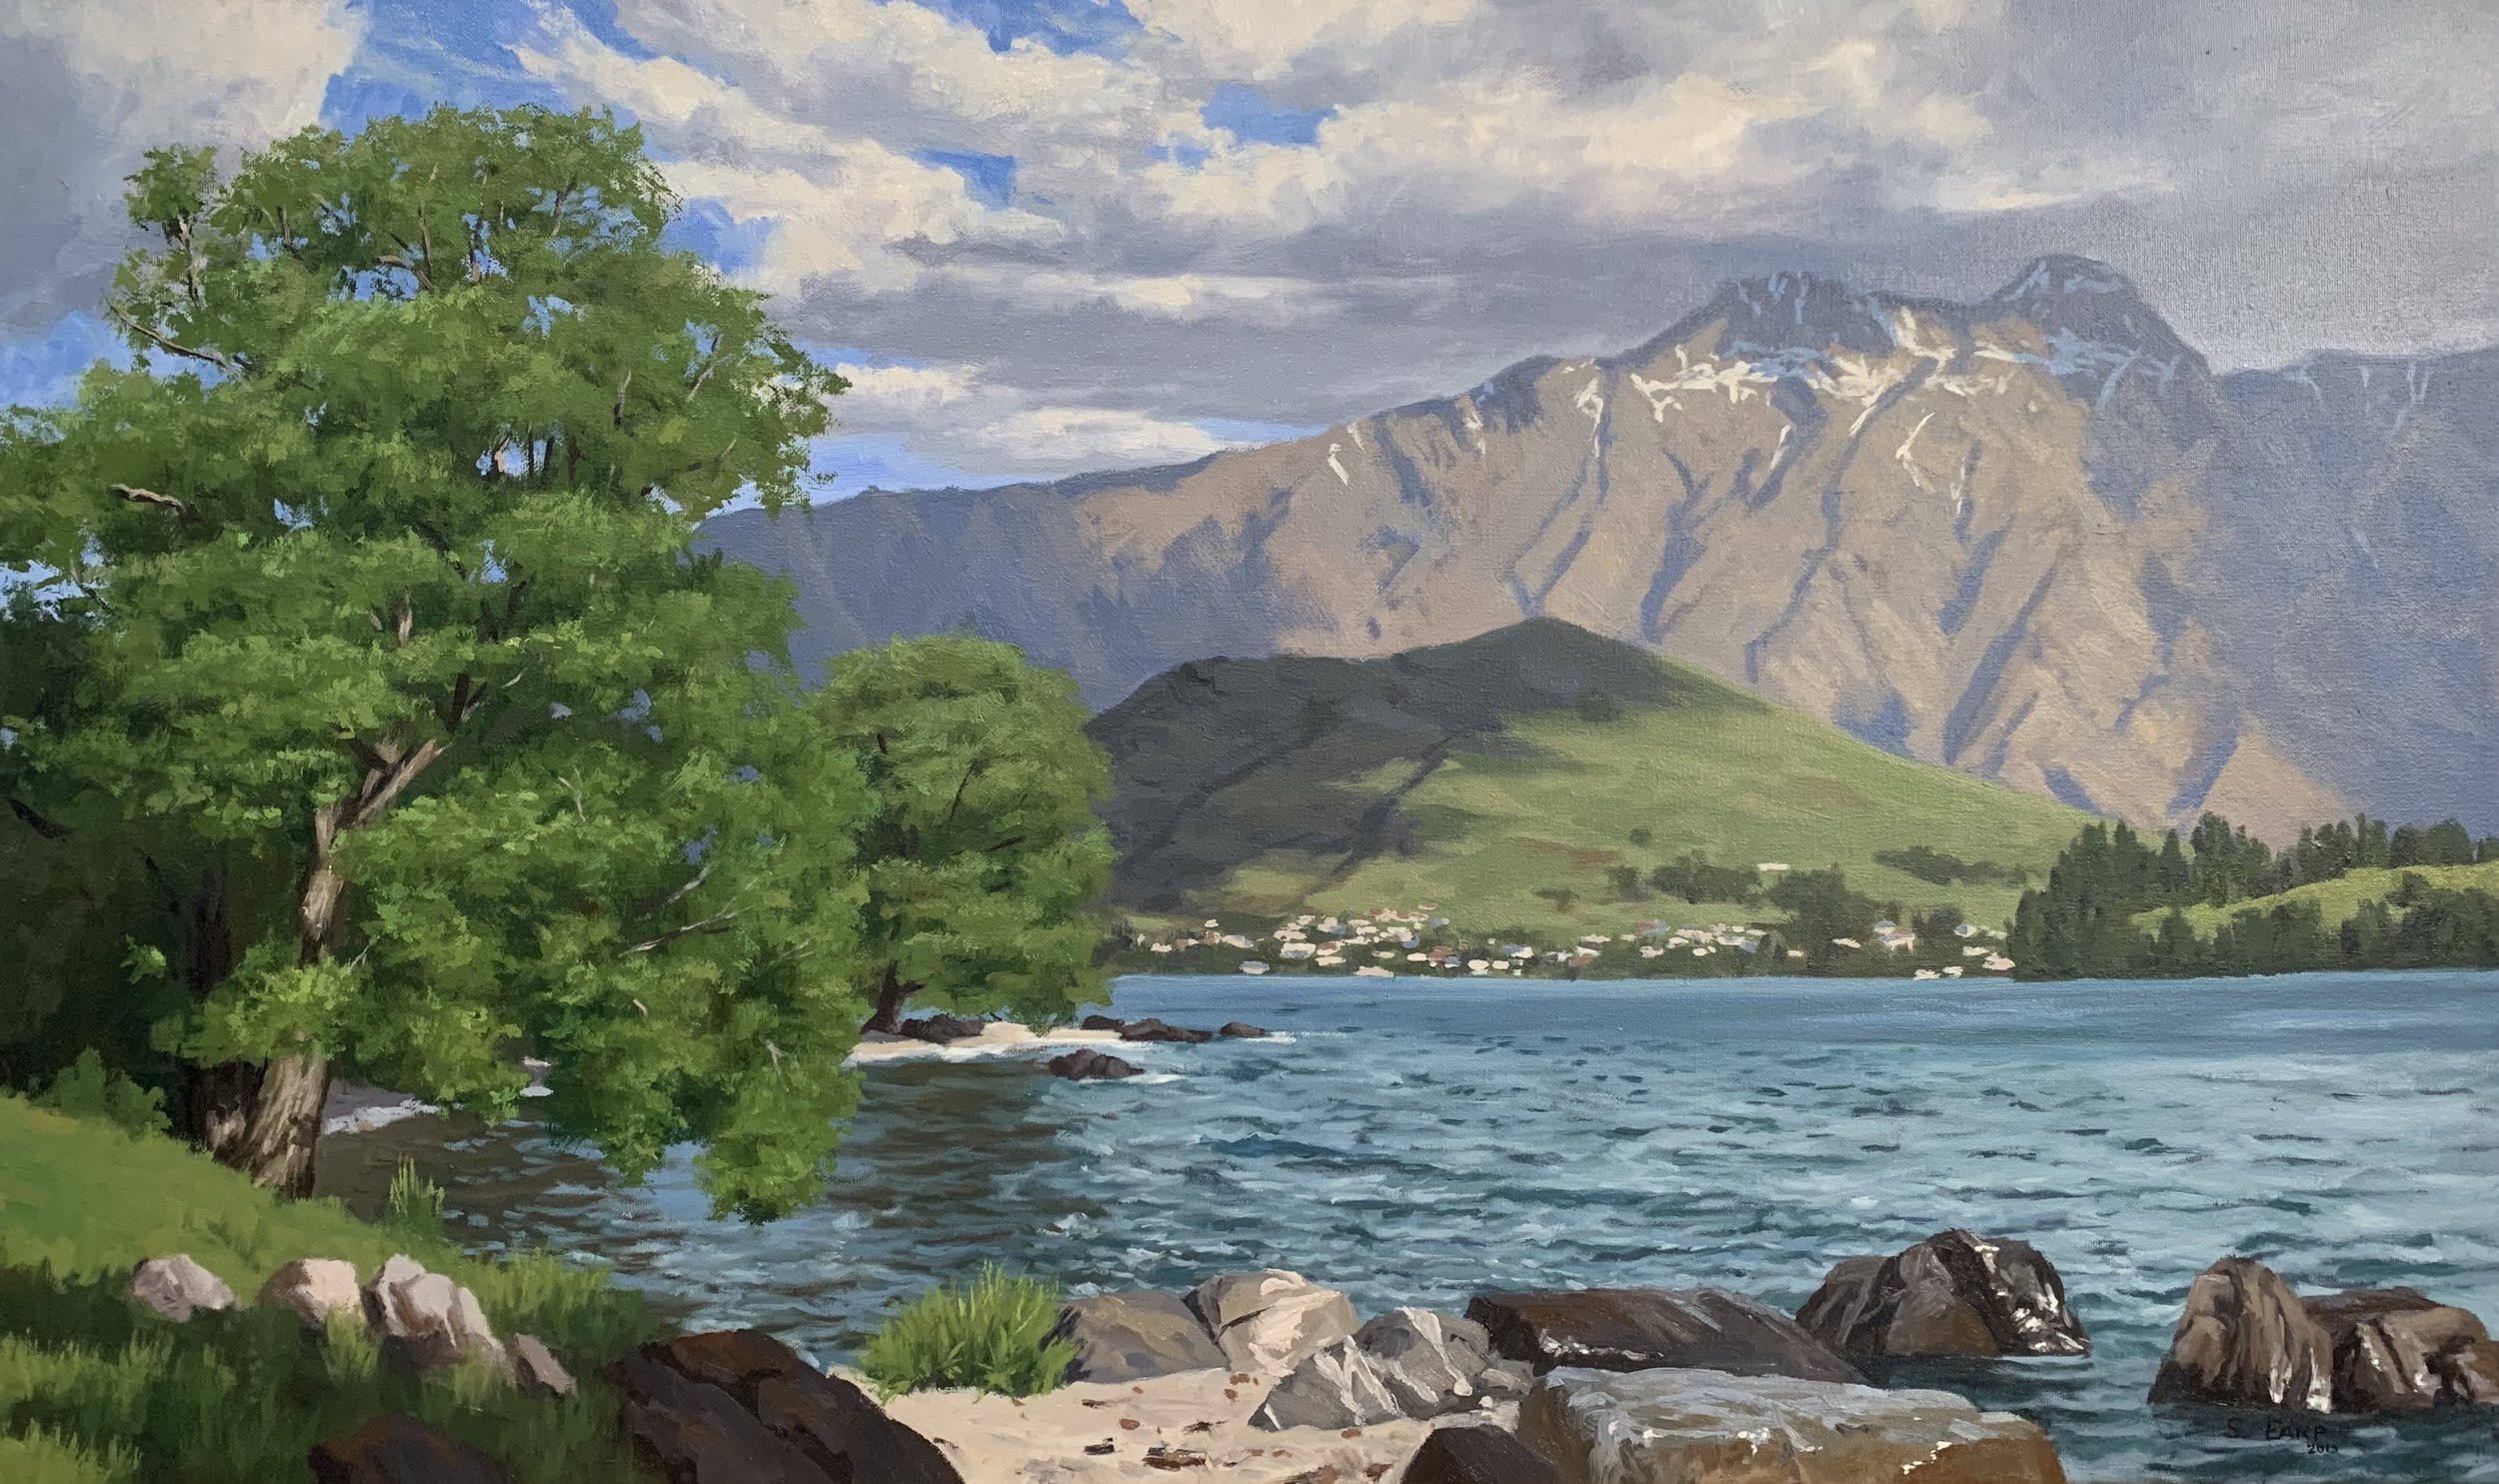 Lake Wakatipu New Zealand - Samuel Earp landscape artist - oil painting.jpg